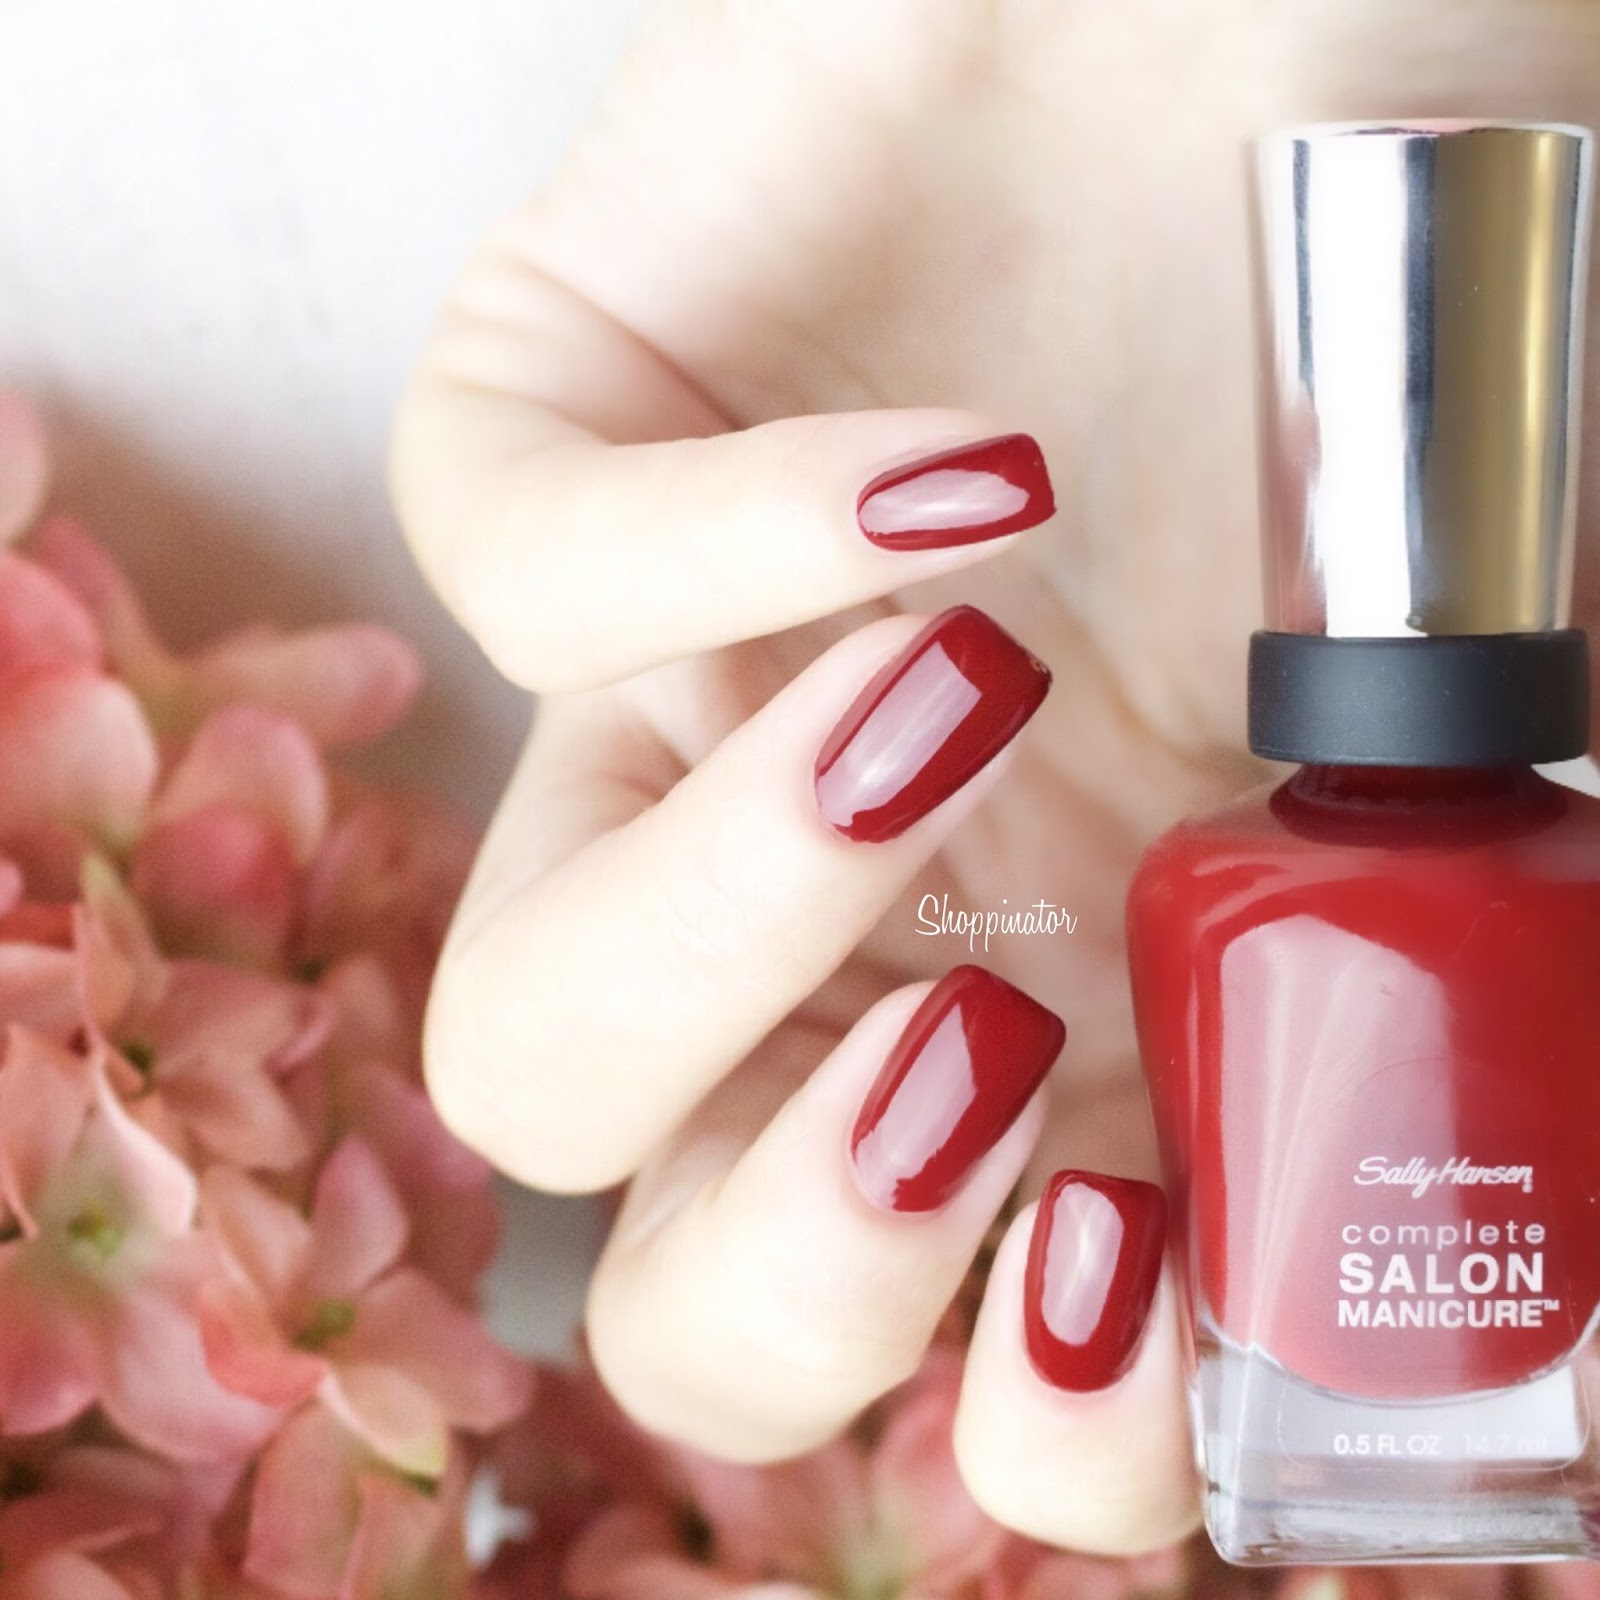 Shoppinator-Sally-Hansen-Designer-LE-limitiert-Collection-Fall-2015-Herbst-Winter-Beige-Glass-Rose-Glass-Winter-Sky-Maasai-Red-Lady-T-LadyT-Midnight-Affair-Swatches-Swatch-Review-Blau-Rot-Silber-Metallic-Nude-Essie-Urban-Jungle-Dupe-Nagellack-Polish-Nailpolish-Lackiert